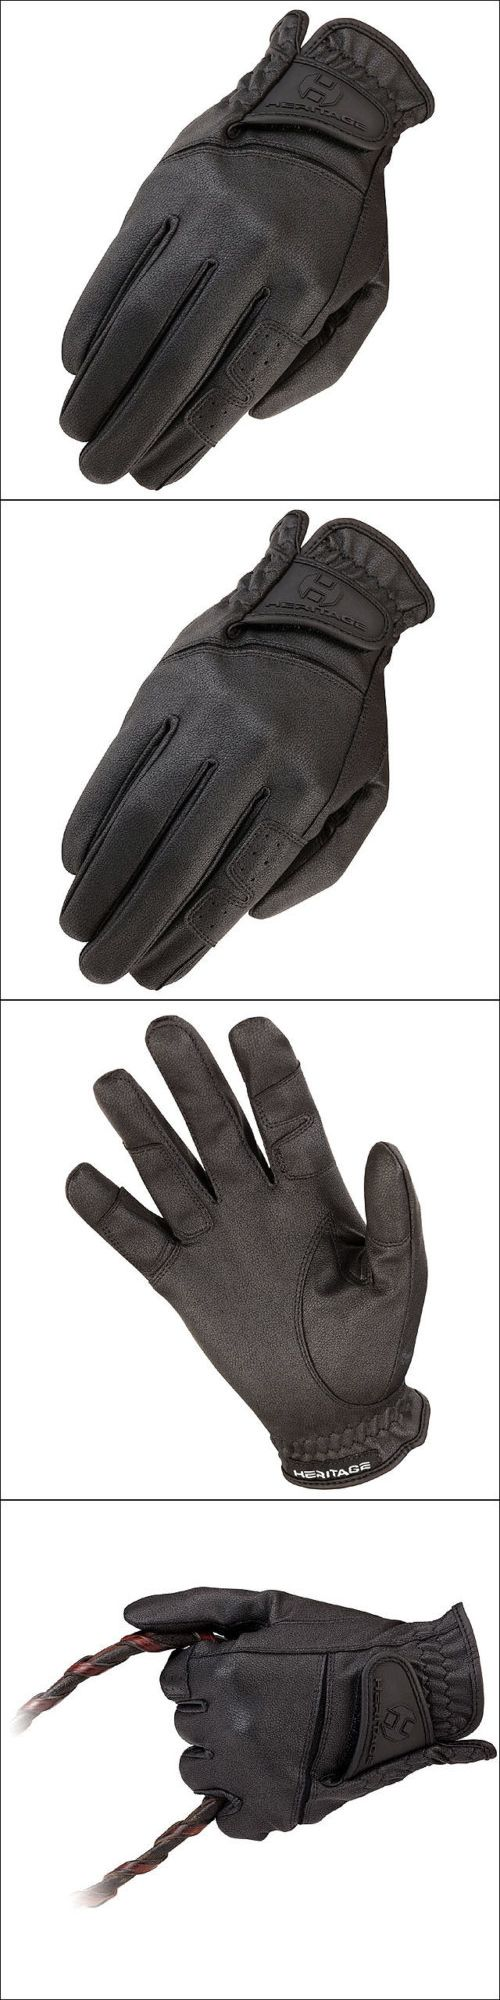 Riding Gloves 95104: 10 Size Heritage Gpx Show Horse Riding Equestrian Glove Leather Black -> BUY IT NOW ONLY: $33.99 on eBay!